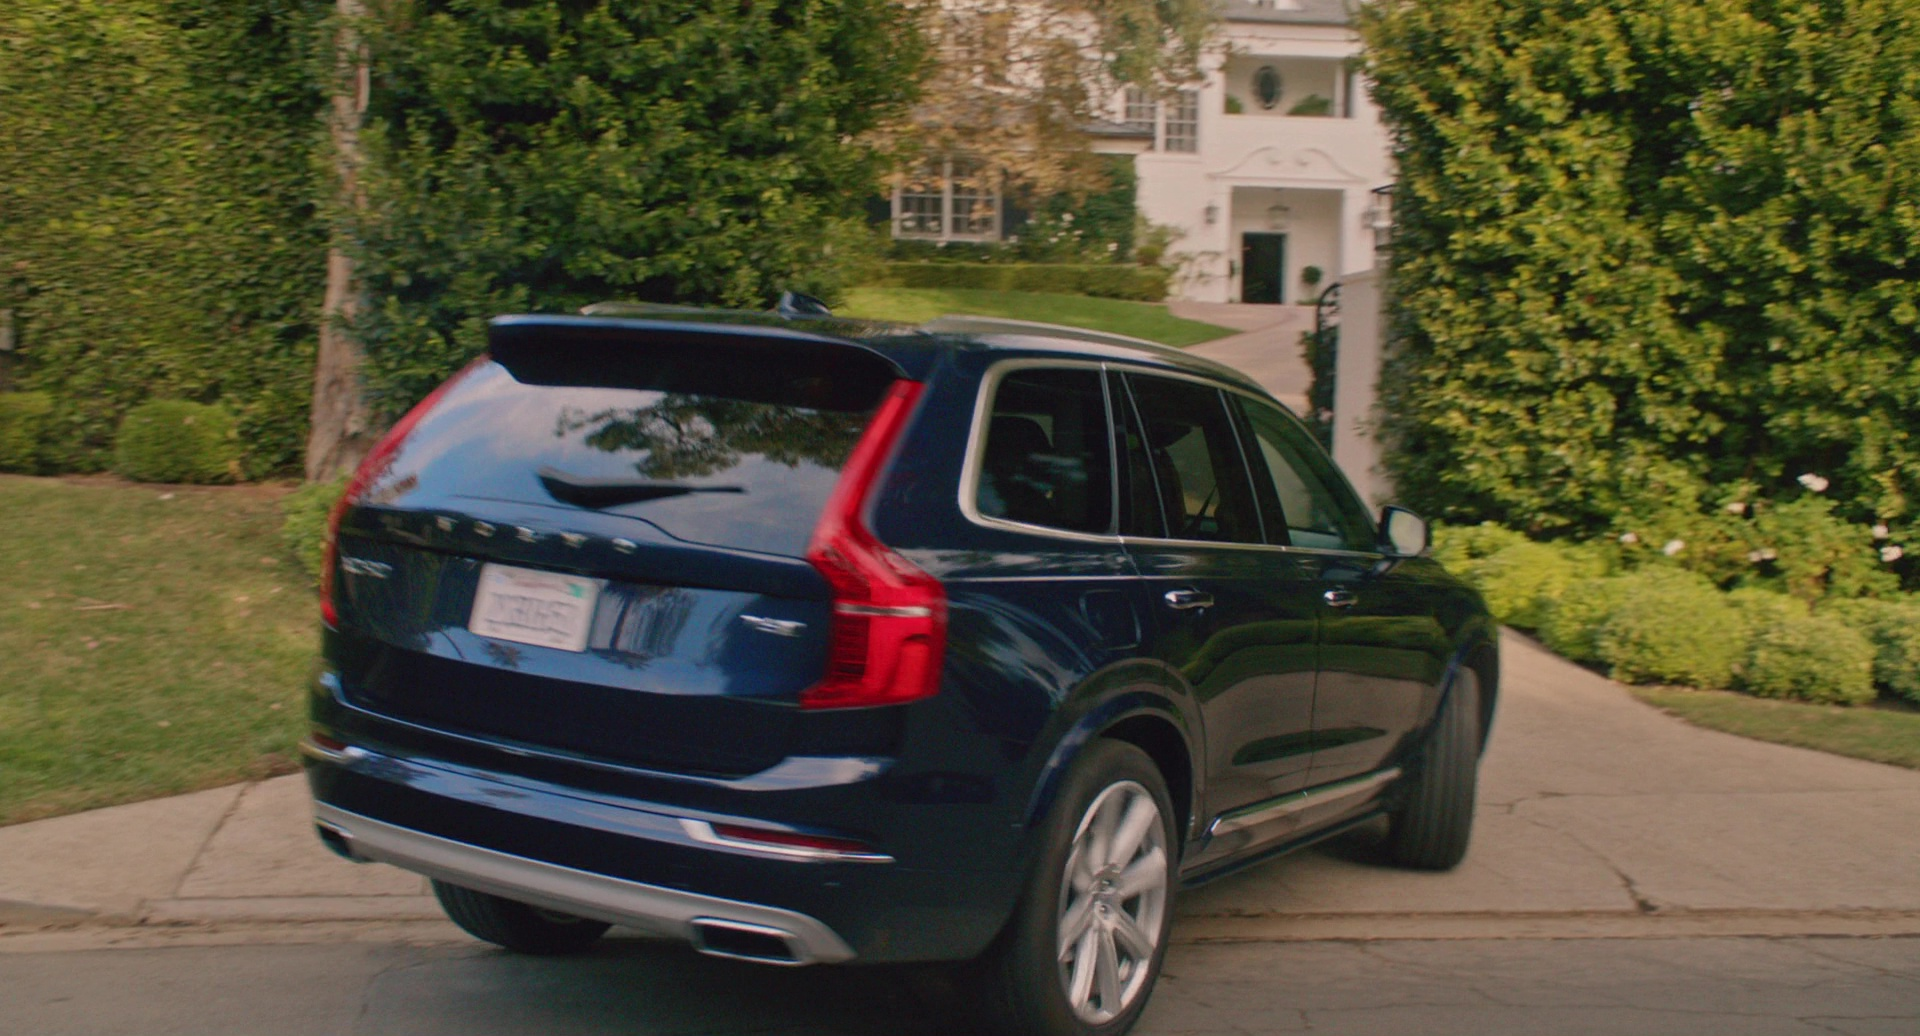 Seen in The Movie: Volvo XC90 Car Driven by Reese Witherspoon in Home Again (2017)